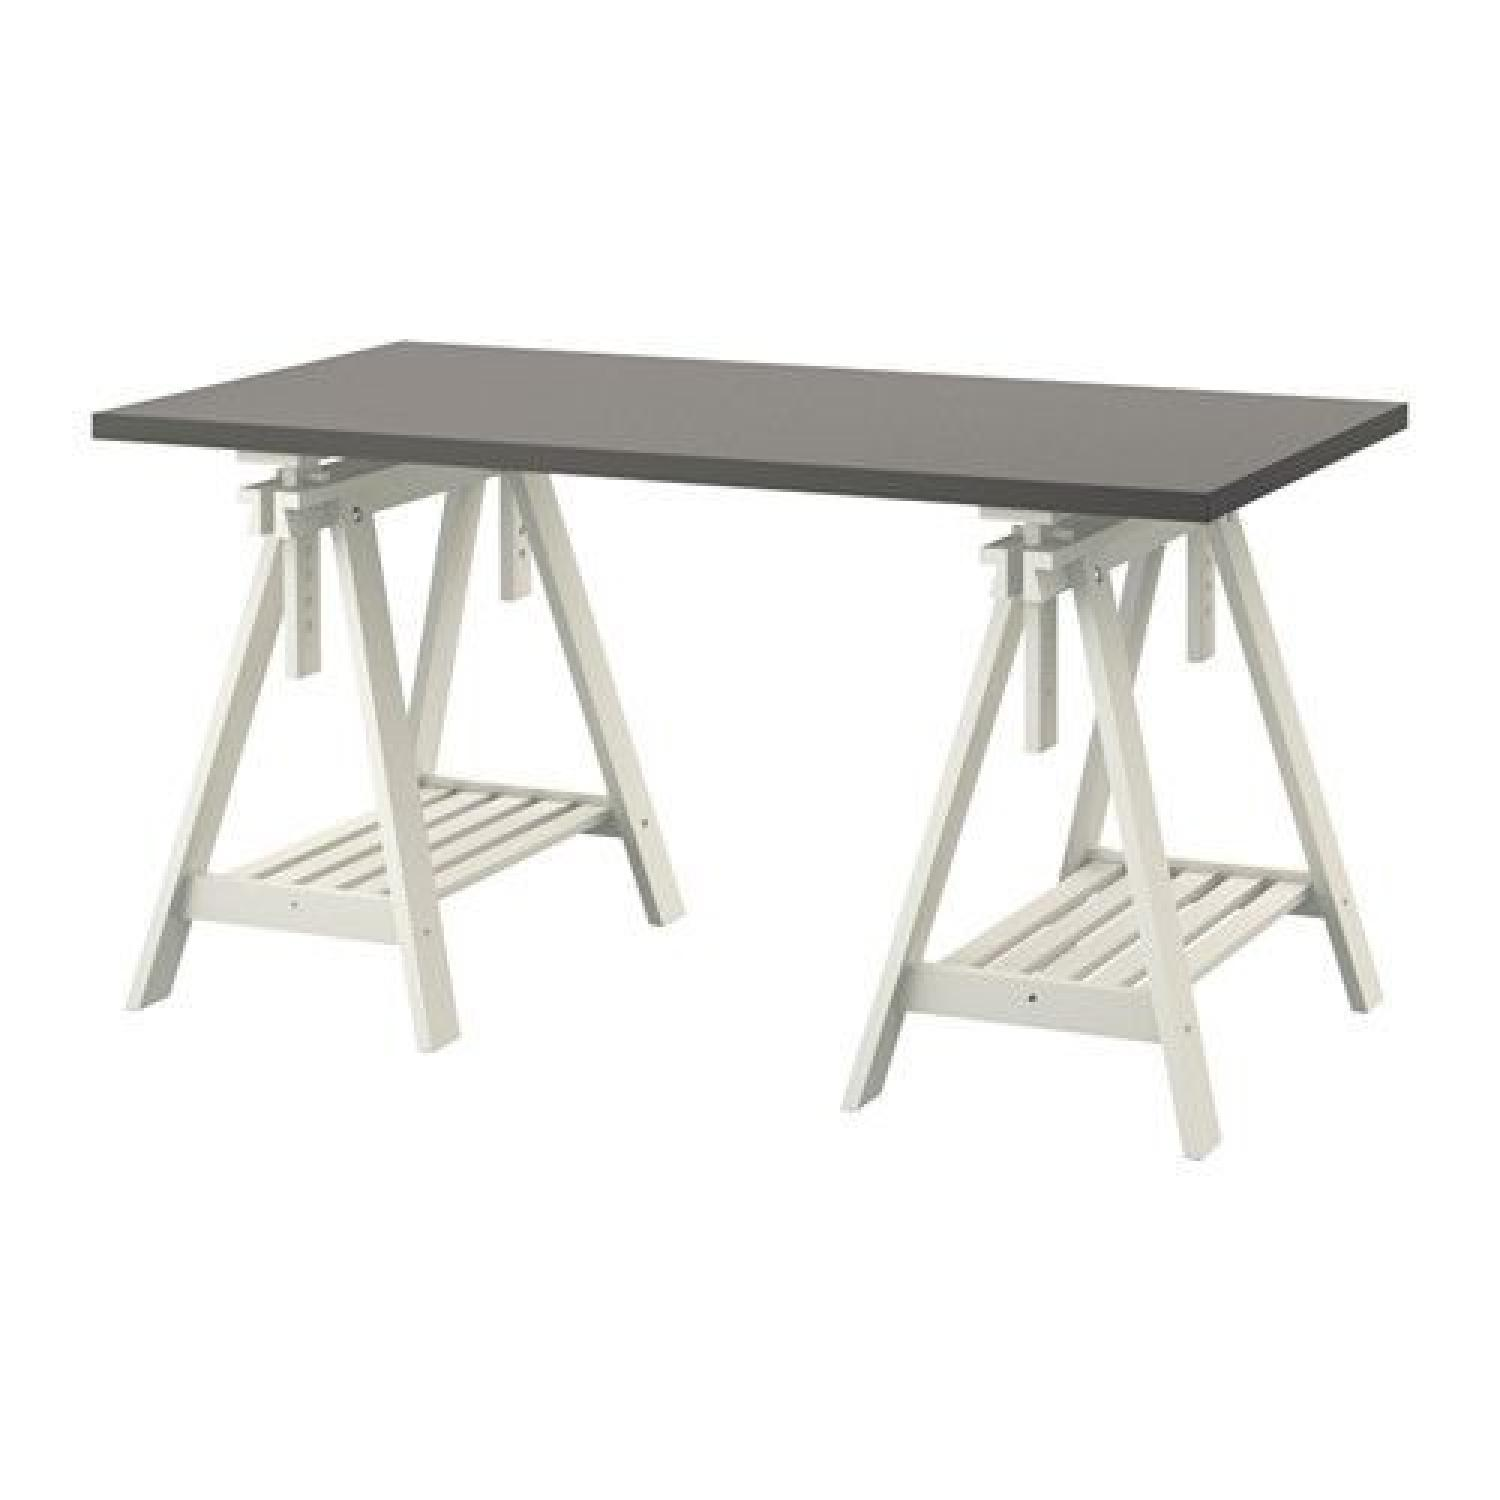 Ikea Dining Table Ikea Grey Top Dining Table W Adjustable Trestle Legs